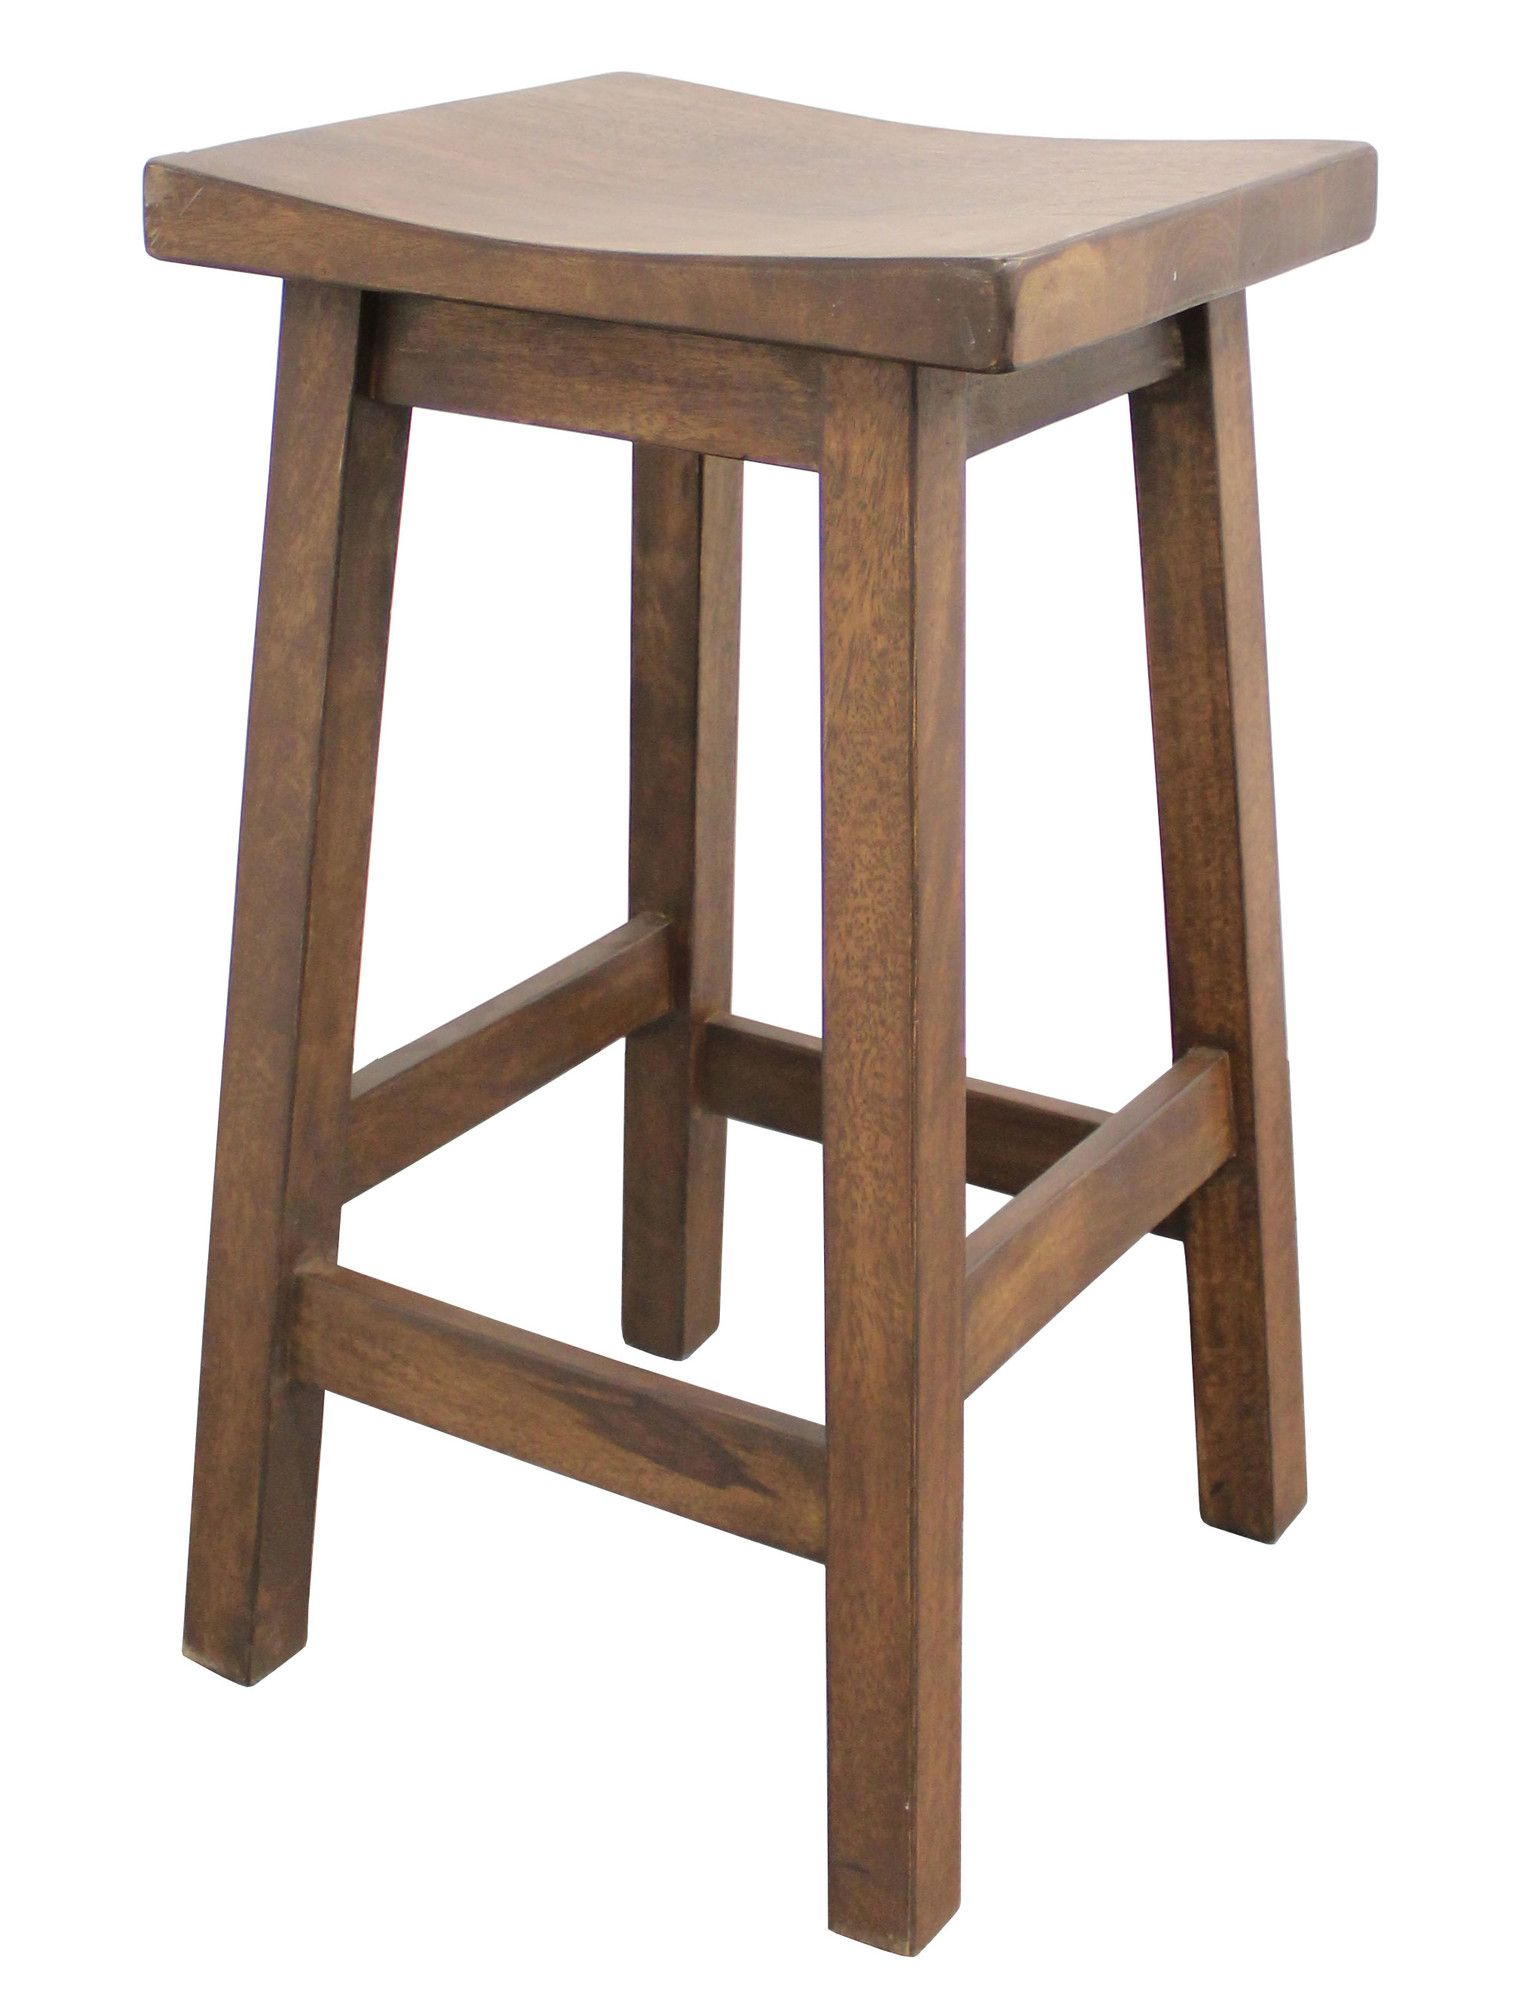 The Patriot Wooden Bar Stool Wayfair Australia Banco